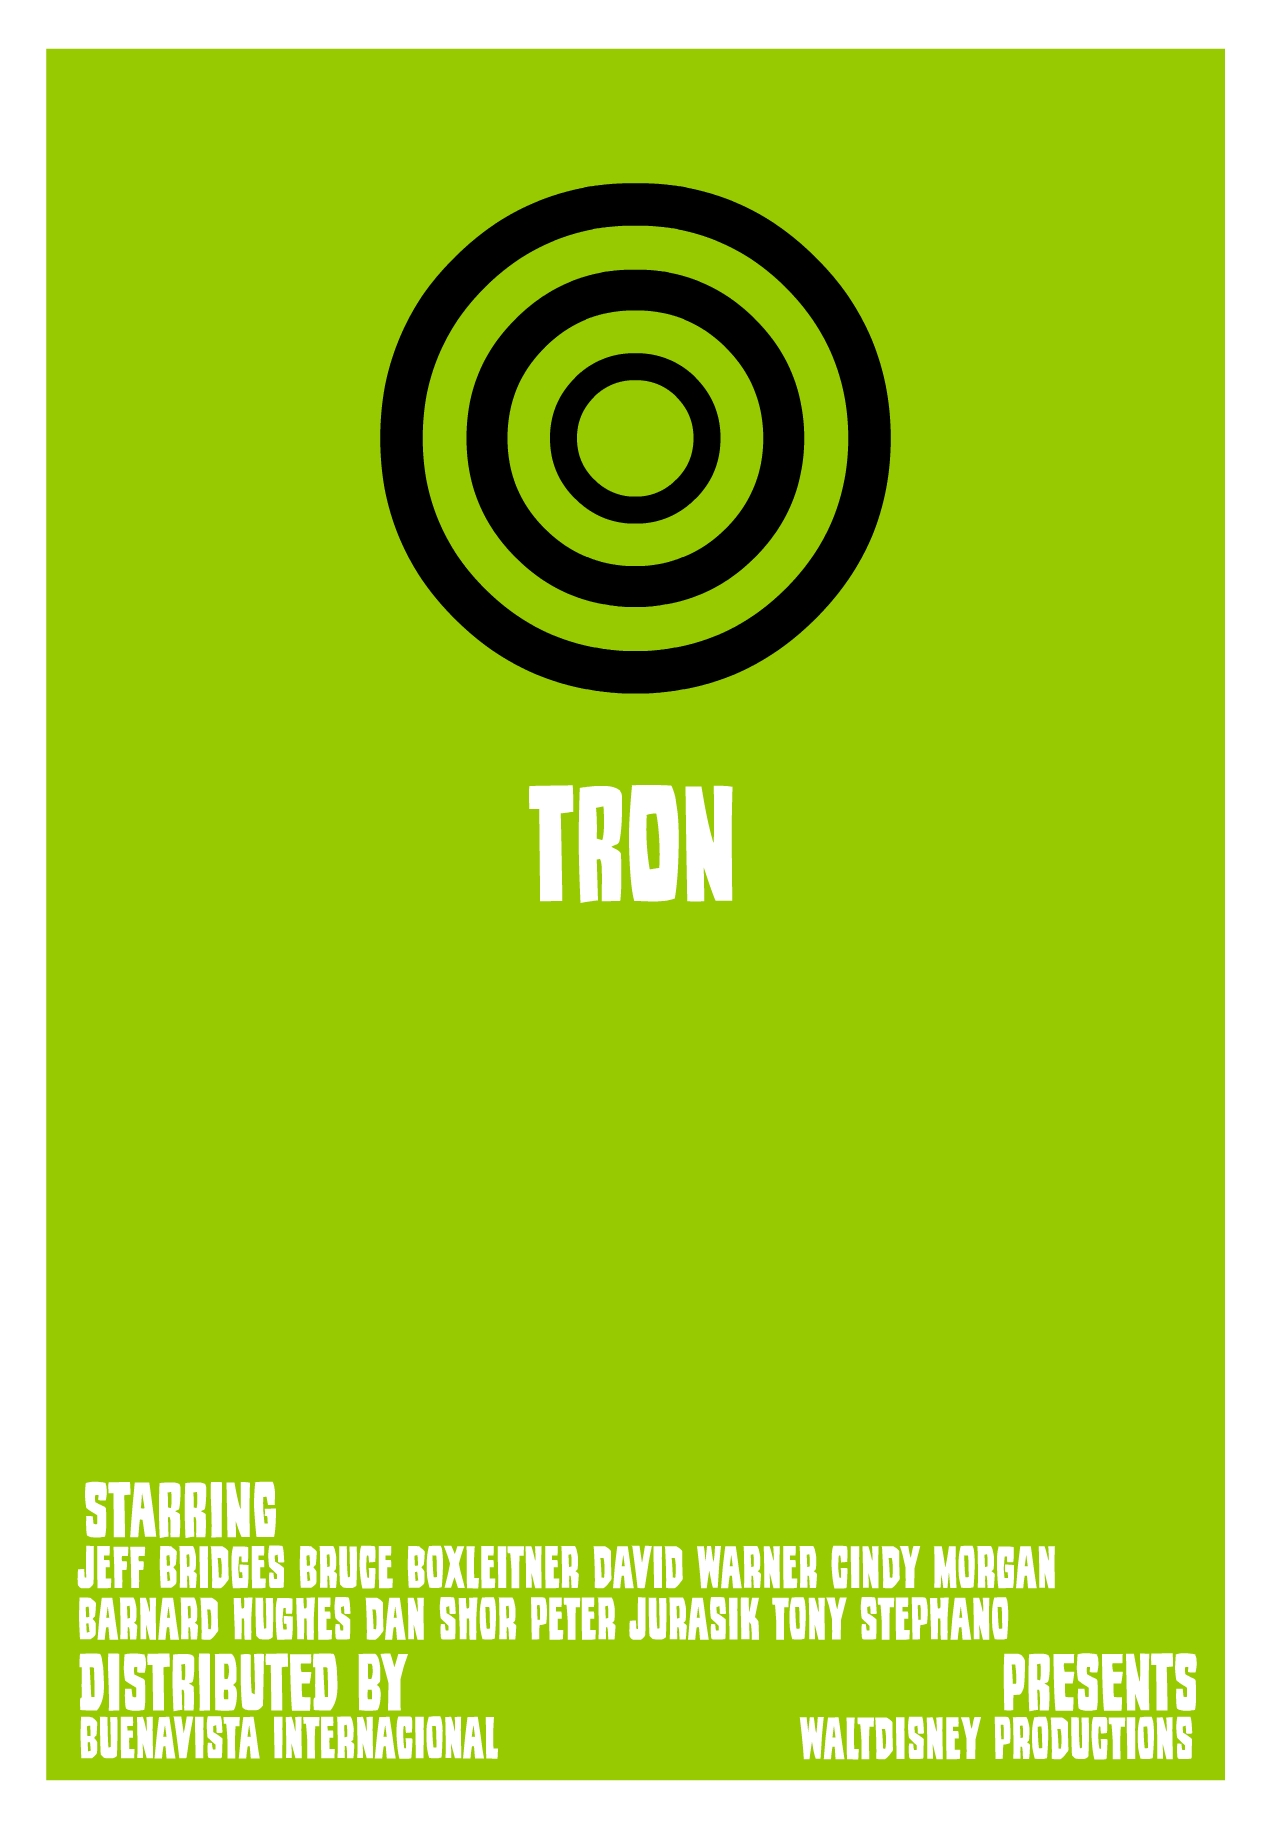 tron_posters_2020_5